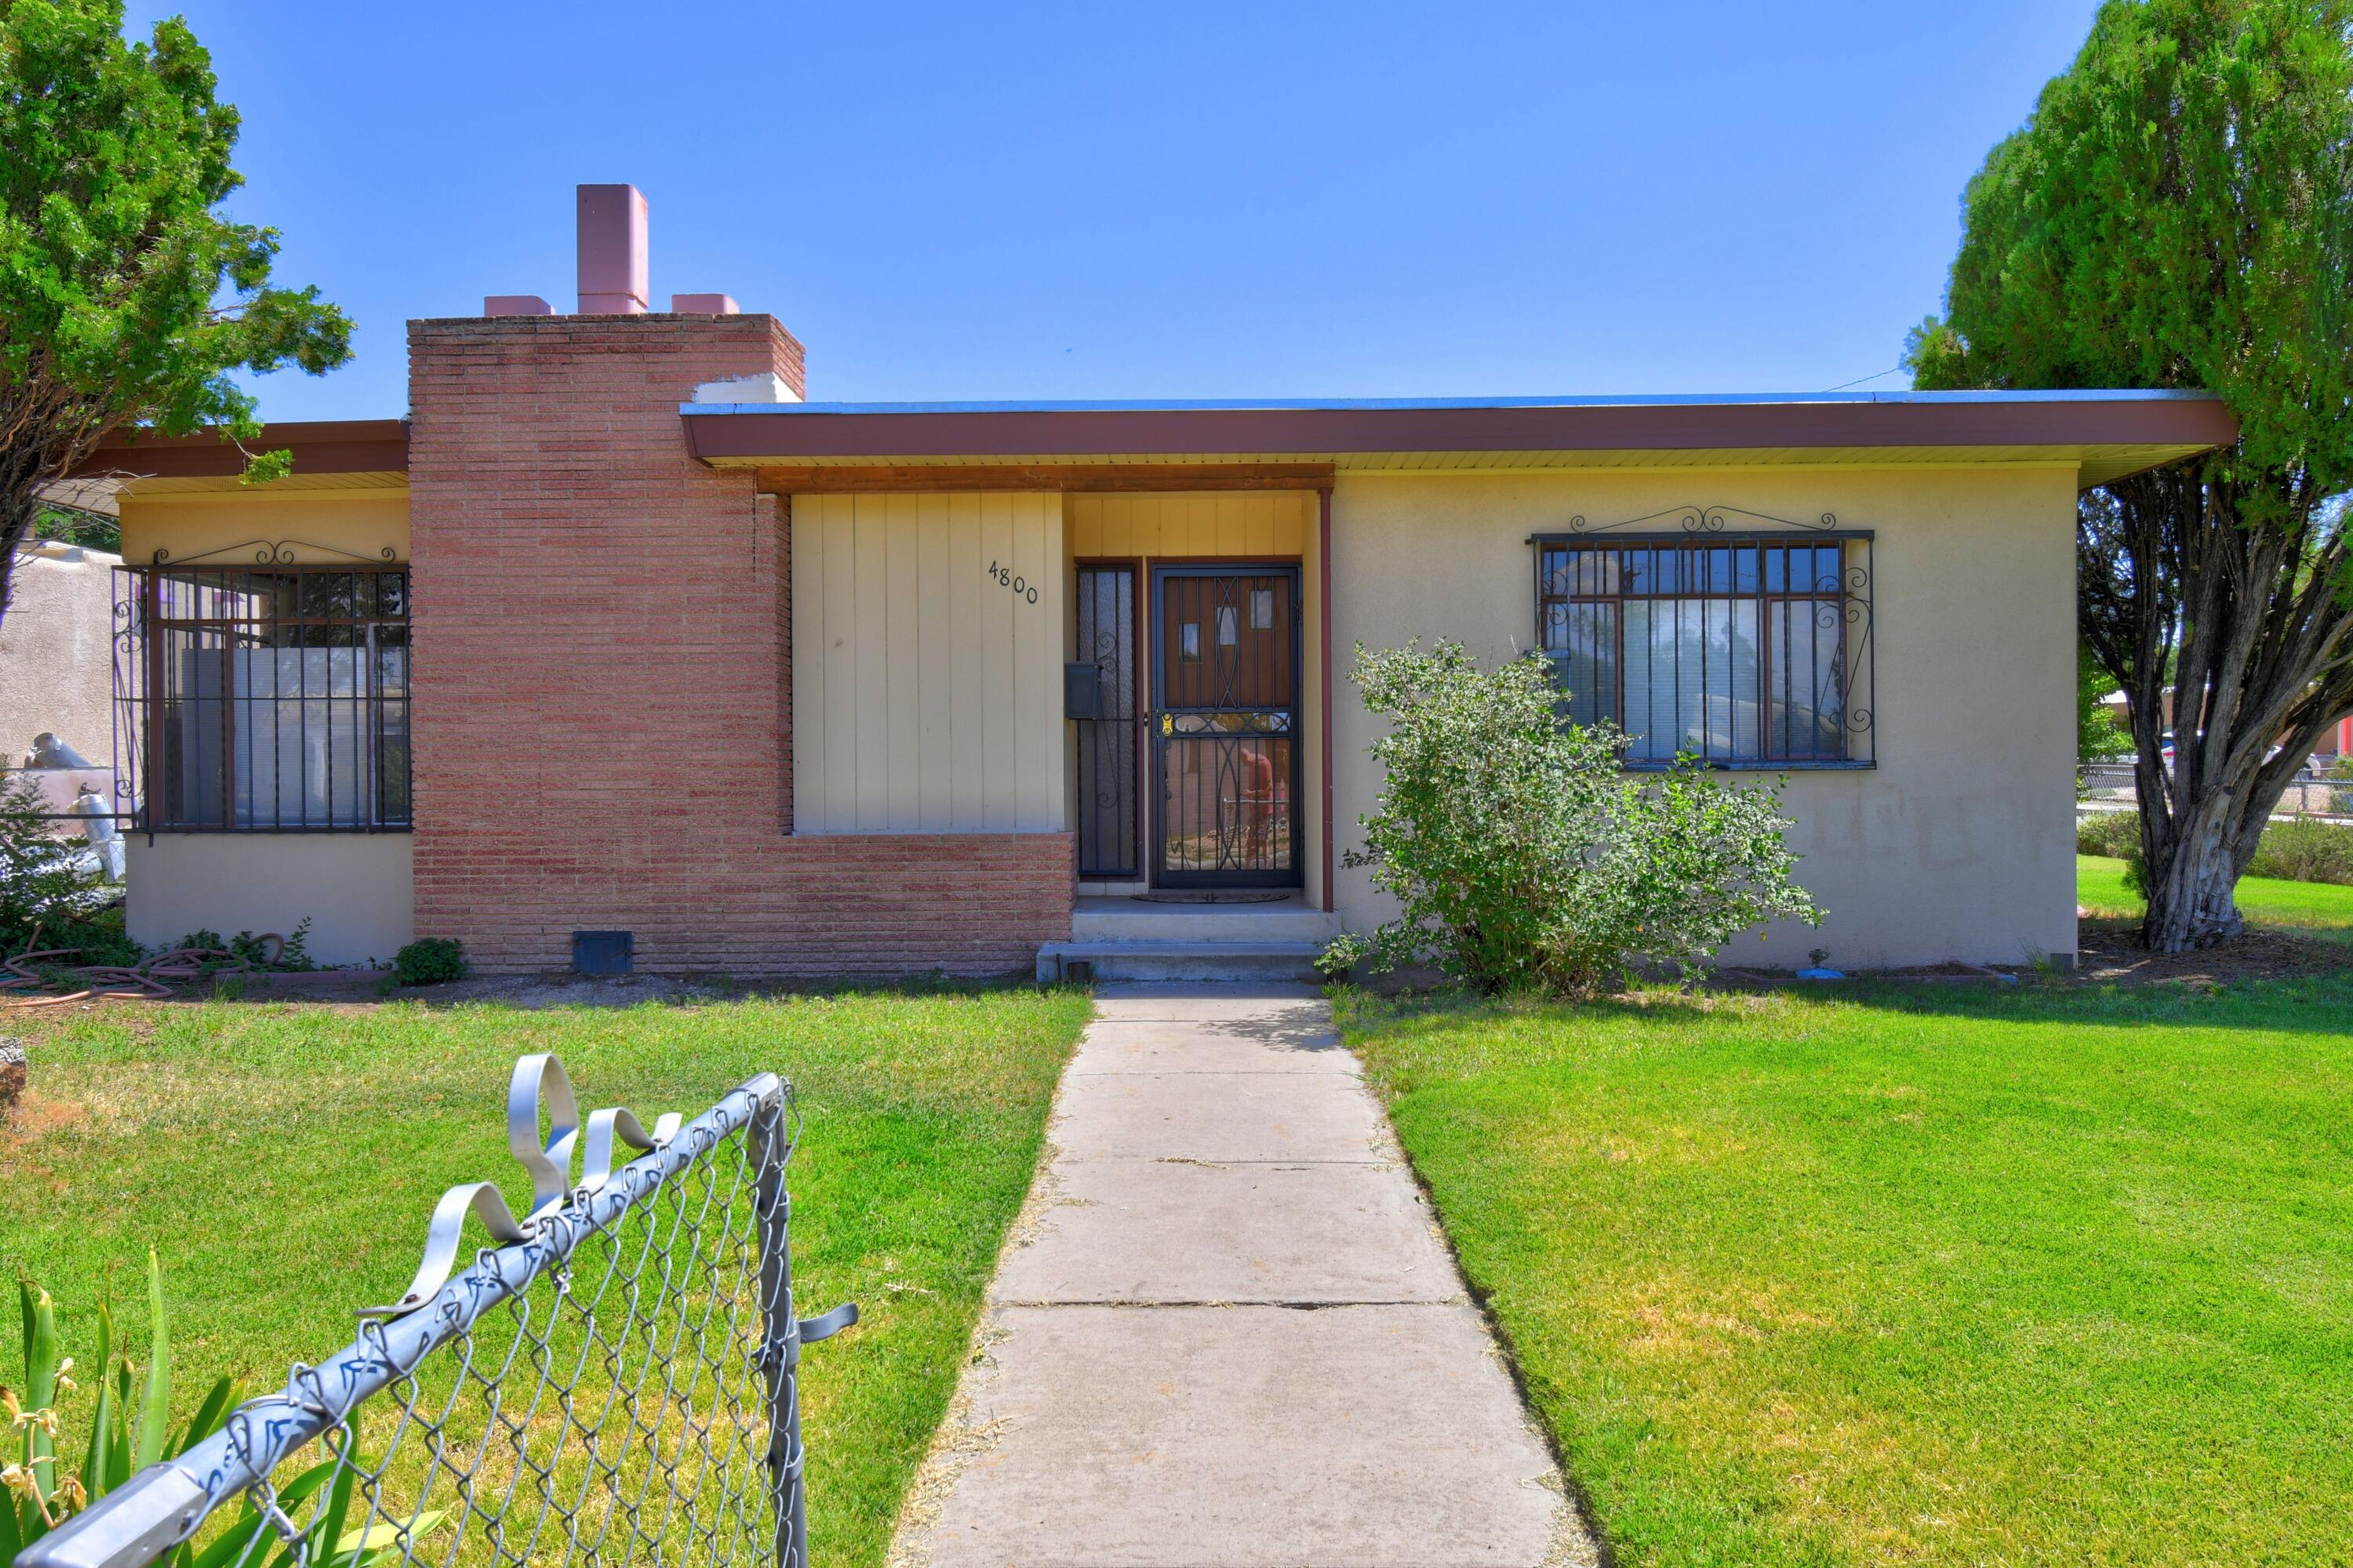 Come see this great home. Three bedroom 1.75 Bath with an attached 2 car garage. This well maintained home features refrigerated air, large living room with a wood stove, wood floors and cove ceilings.  Nicely landscaped front yard The back yard has covered patio and a large area with possible access which has many possibilities for entertaining.  Close to UNM, Nob Hill and Sandia National Labs.